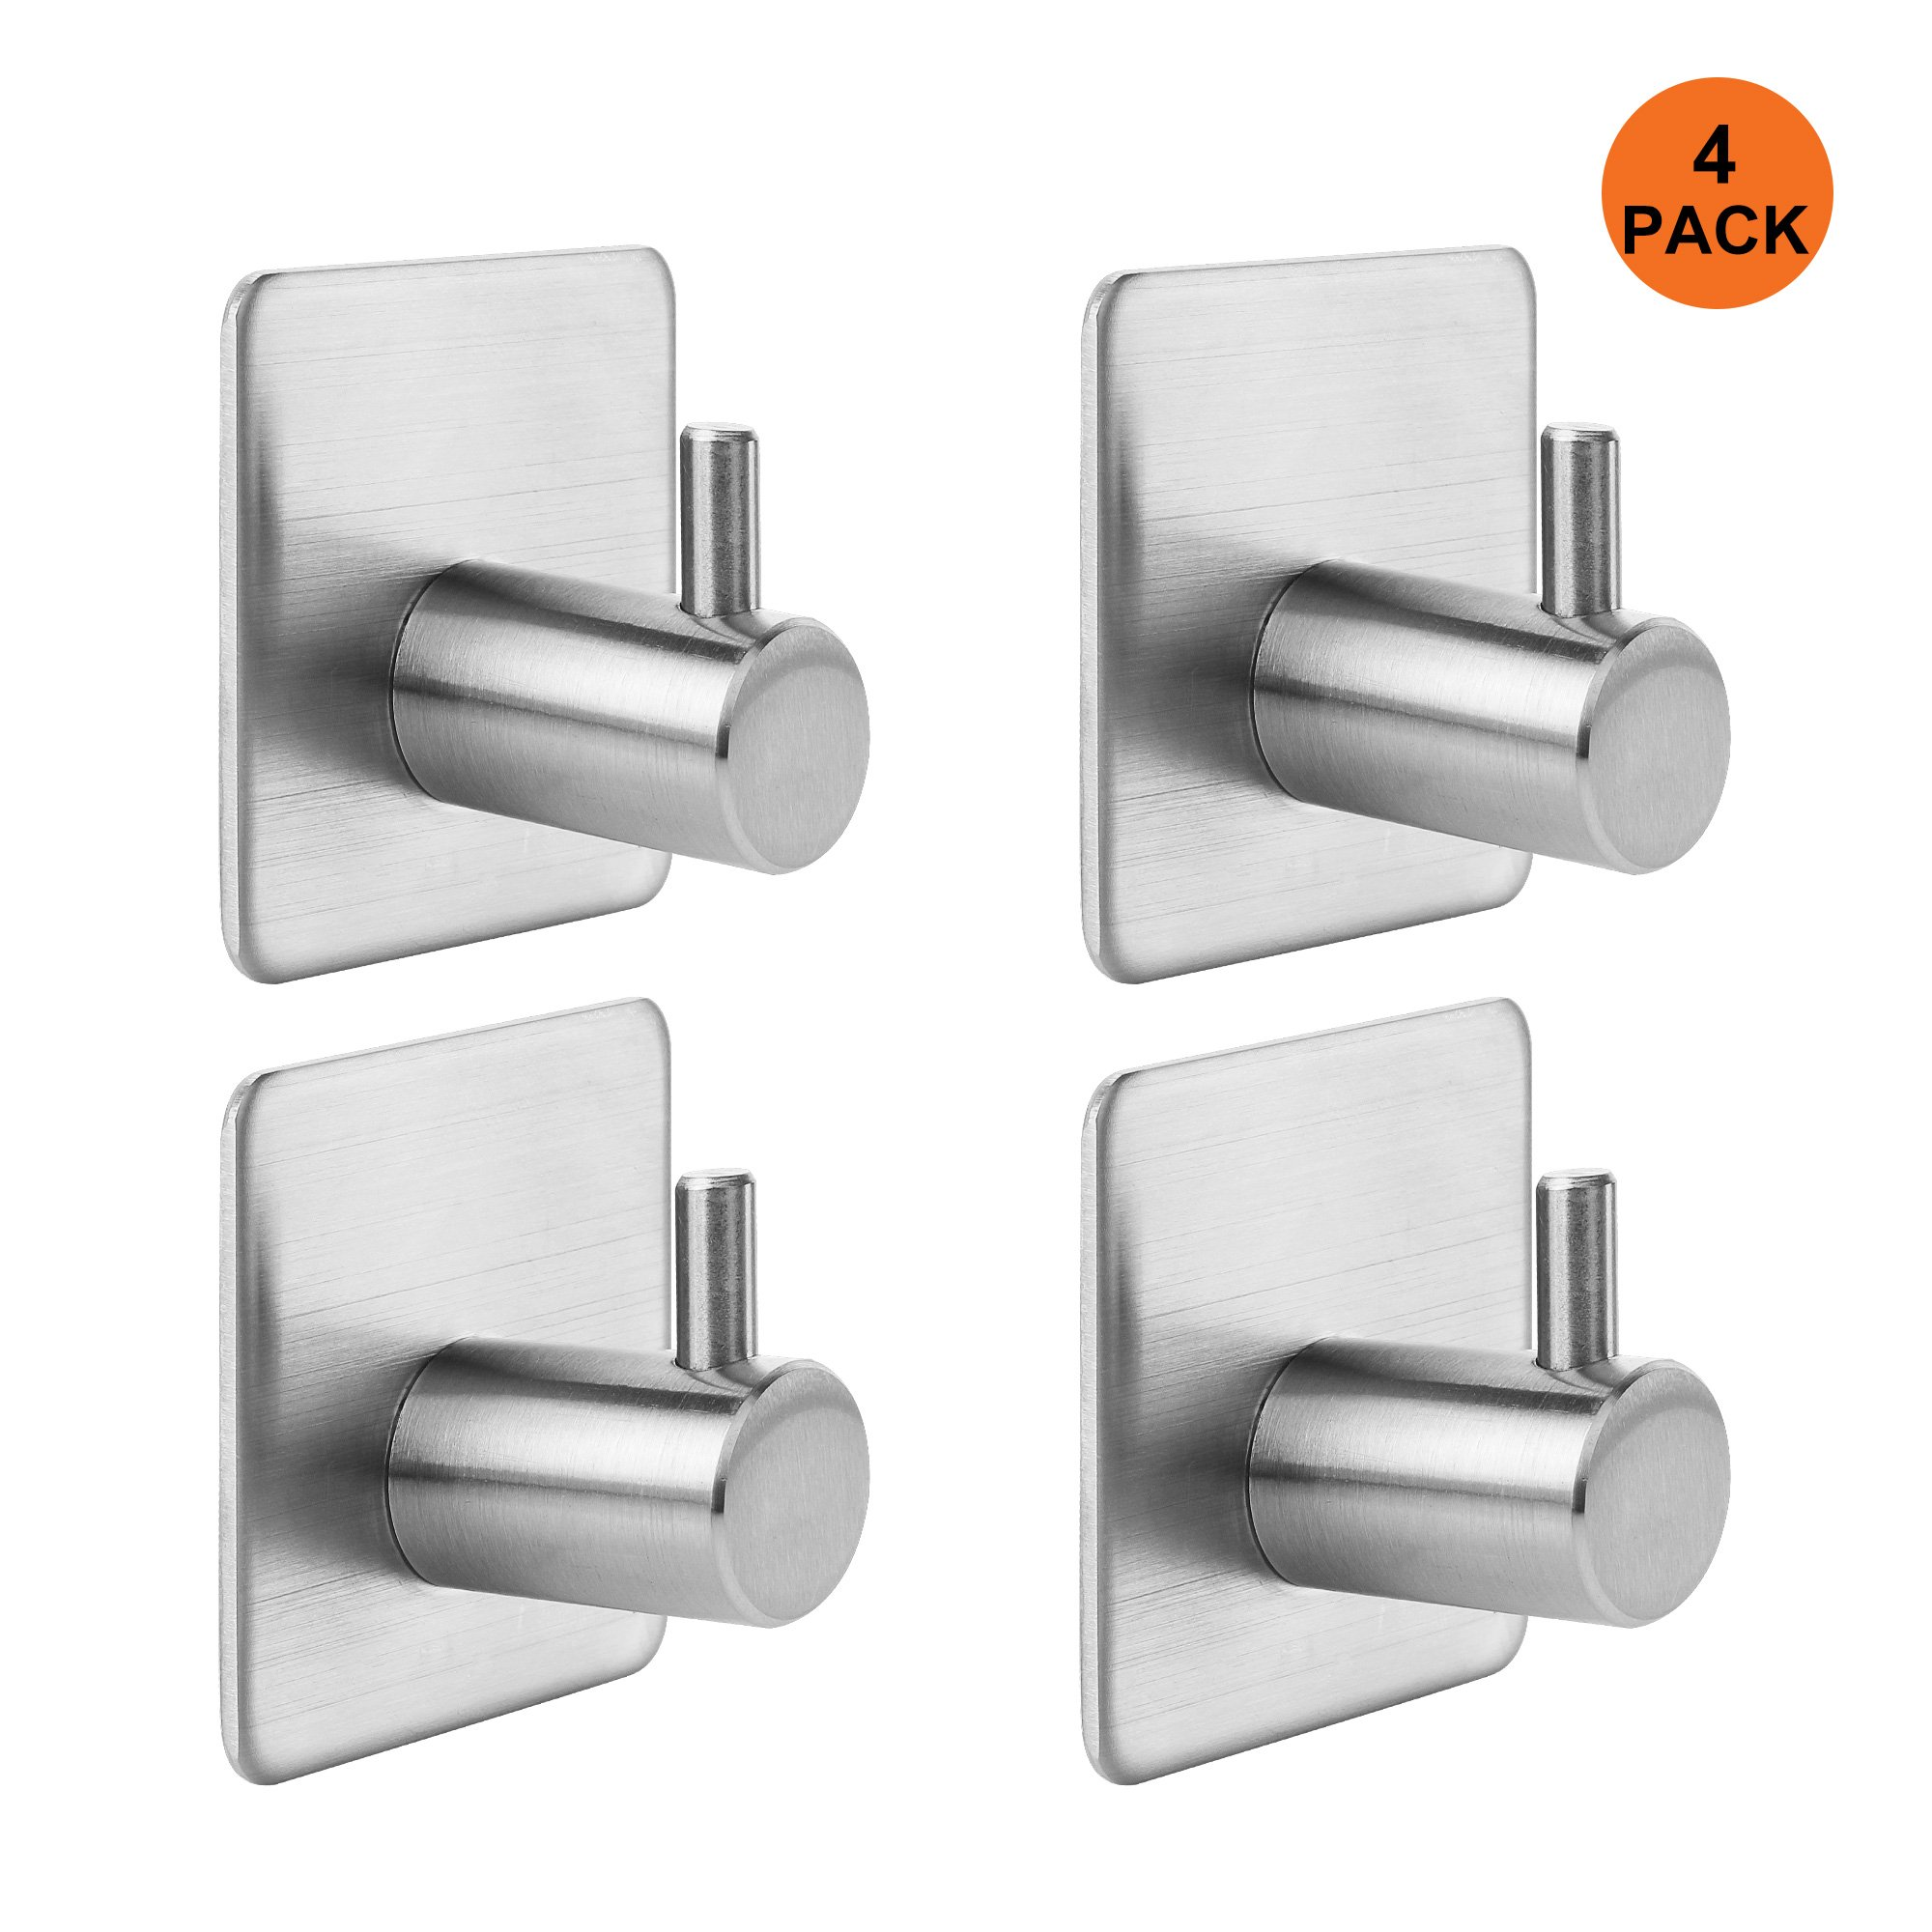 KANGORA Bathroom Towel Hook Bath, Shower & Kitchen | Strong Adhesive Backing Wall Door | Contemporary, Stainless Steel Design | Easy Installation (4 - Pack)